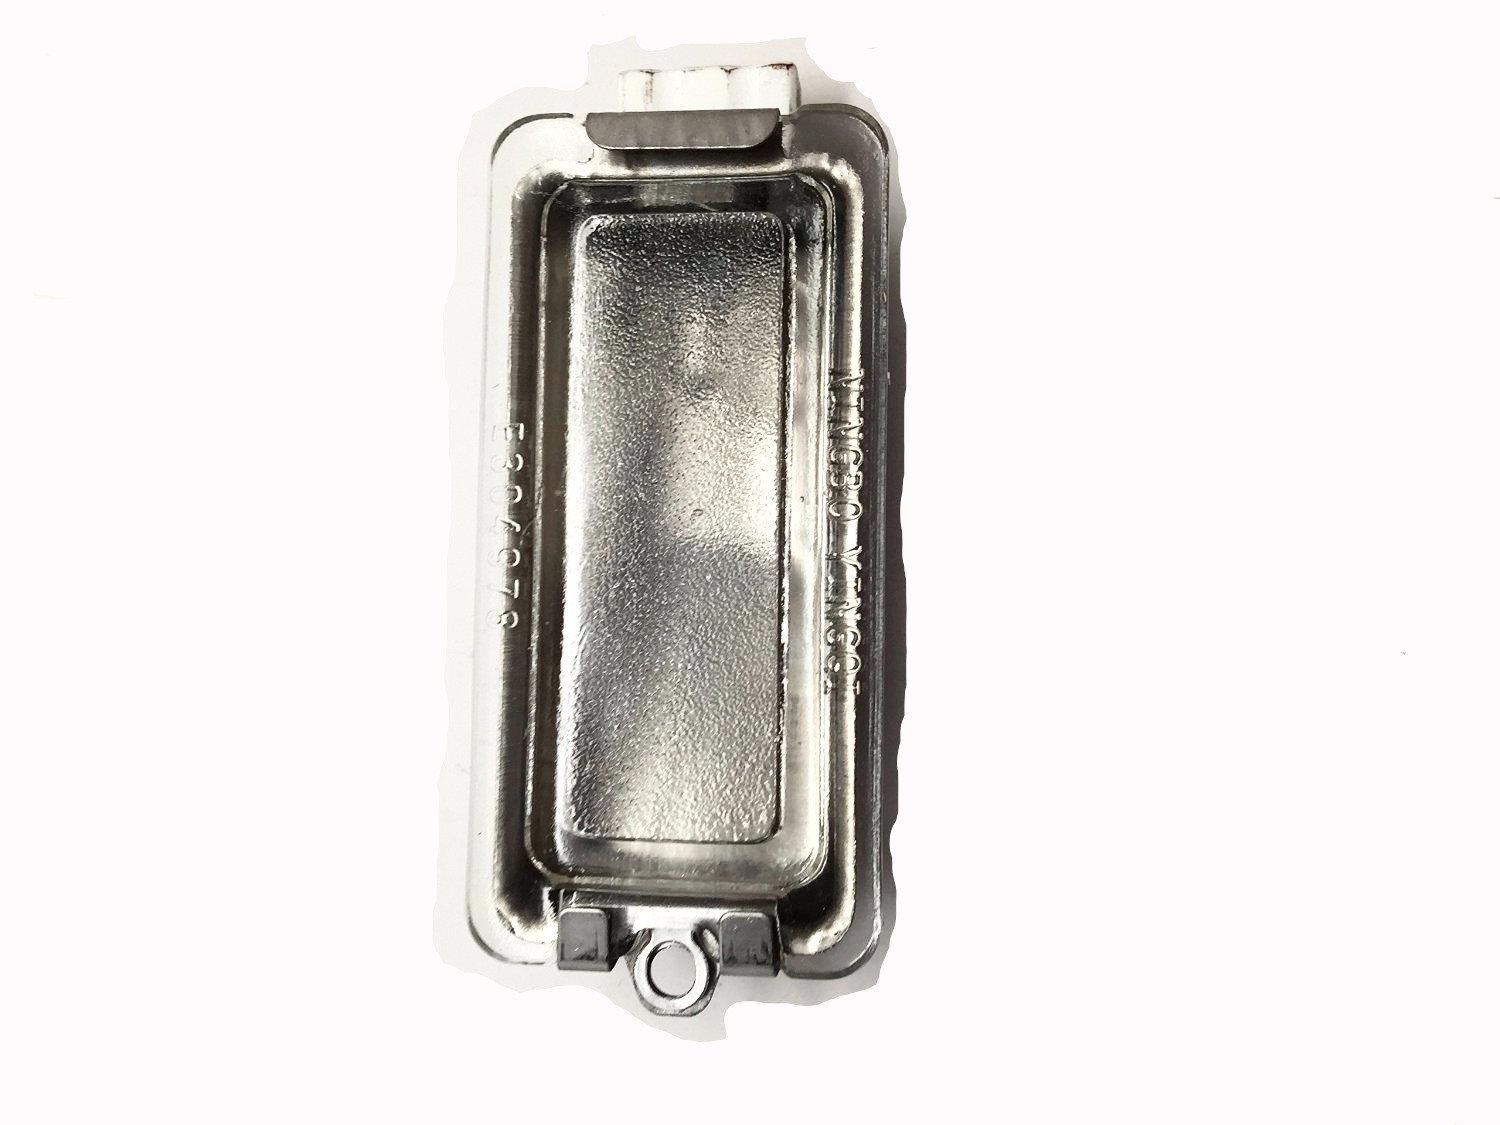 BBQ Grill Bull Electrical Light Housing For Most Models 16627 OEM by Bull Grills